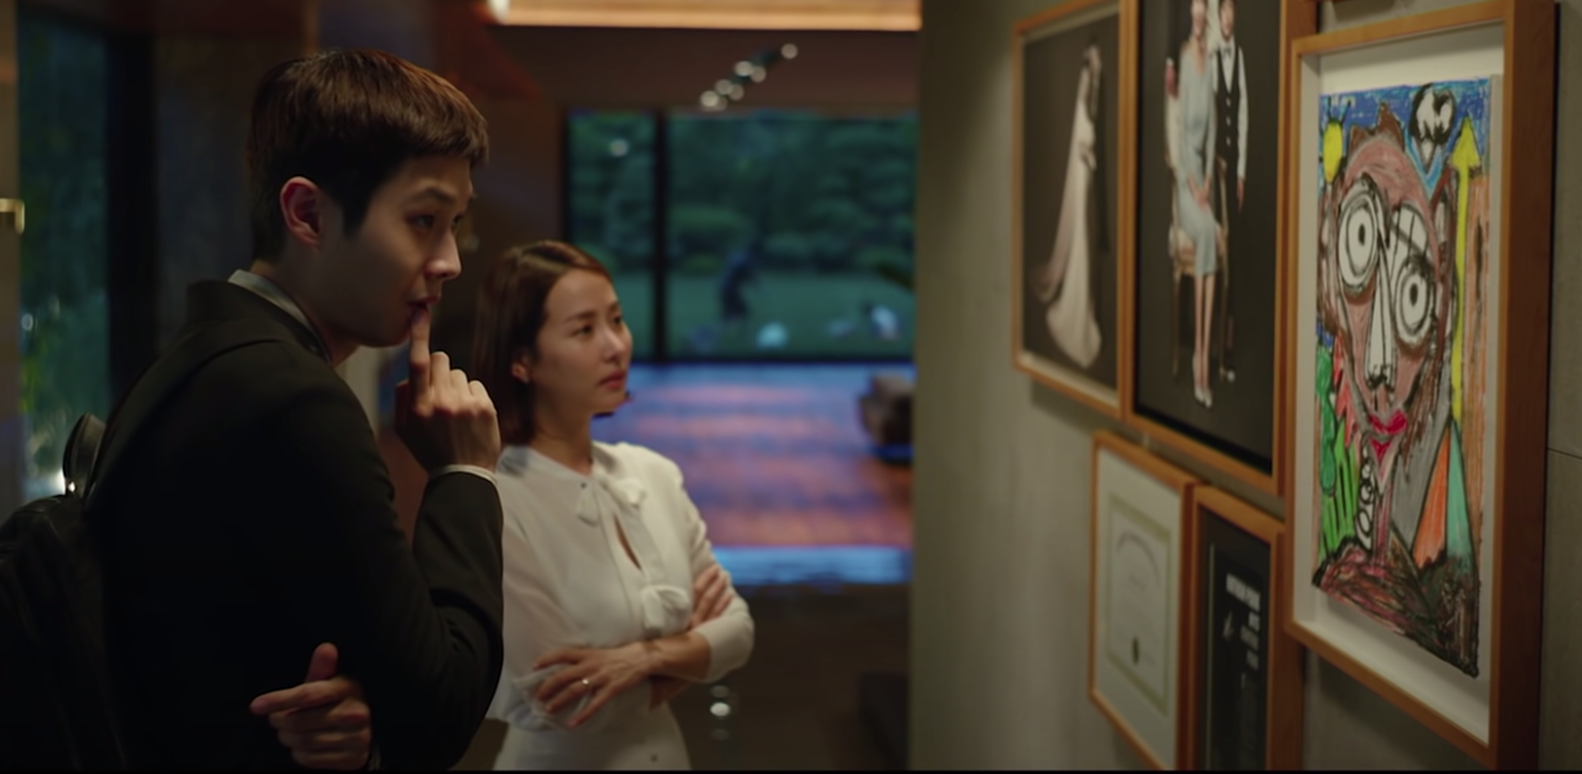 Kim Ki-woo and Choi Yeon-gyo examine art that was done by Yeon-gyo's son